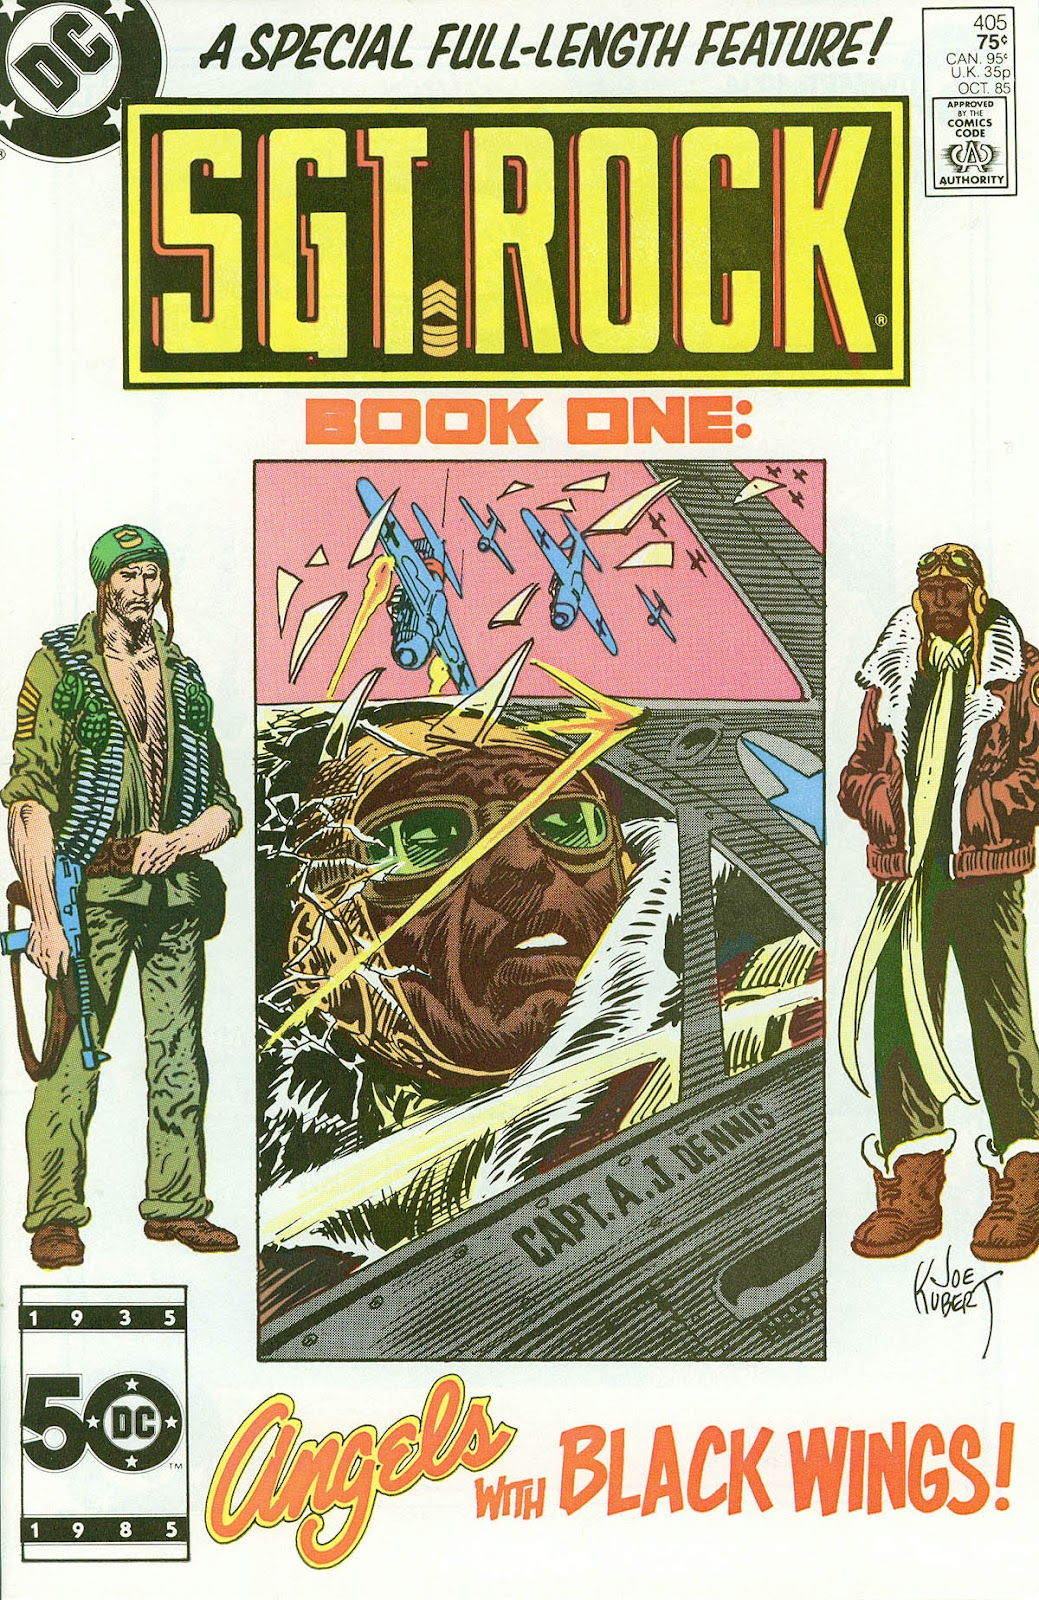 Sgt. Rock issue 405 - Page 1